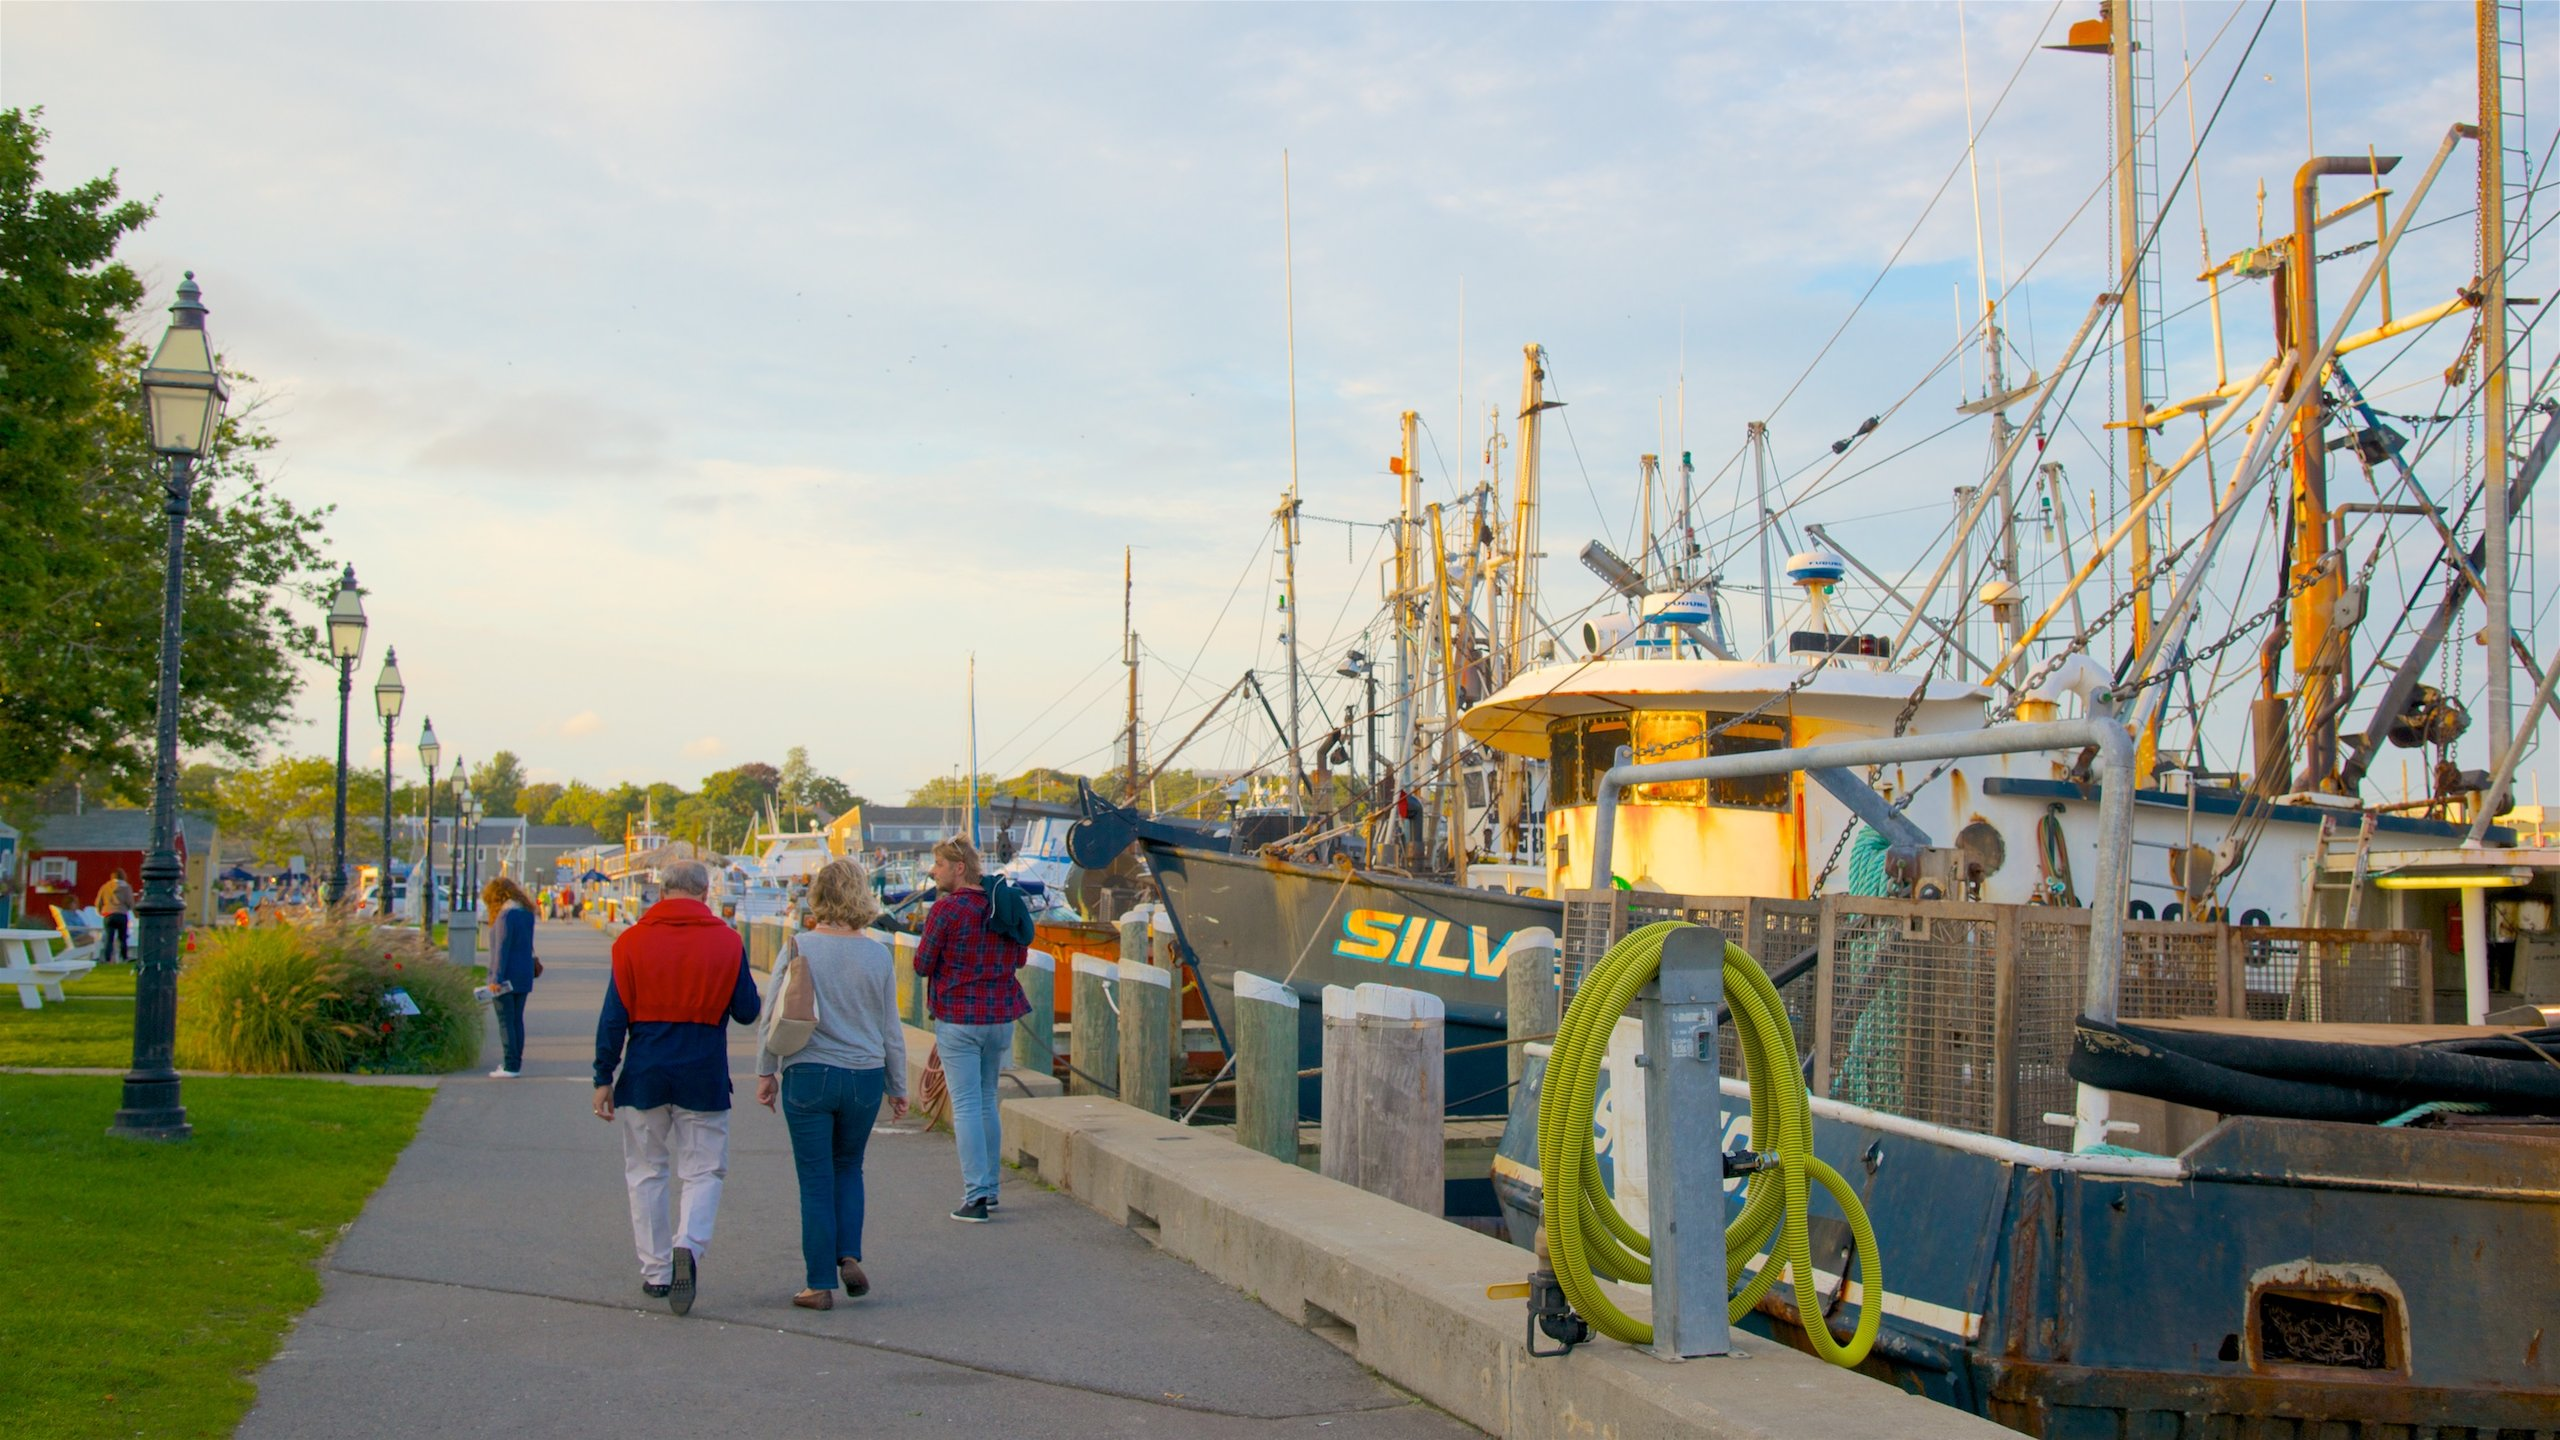 See the Cape Cod peninsula from a different perspective by riding a boat out of this picturesque harbor or wandering along its docks and jetties.